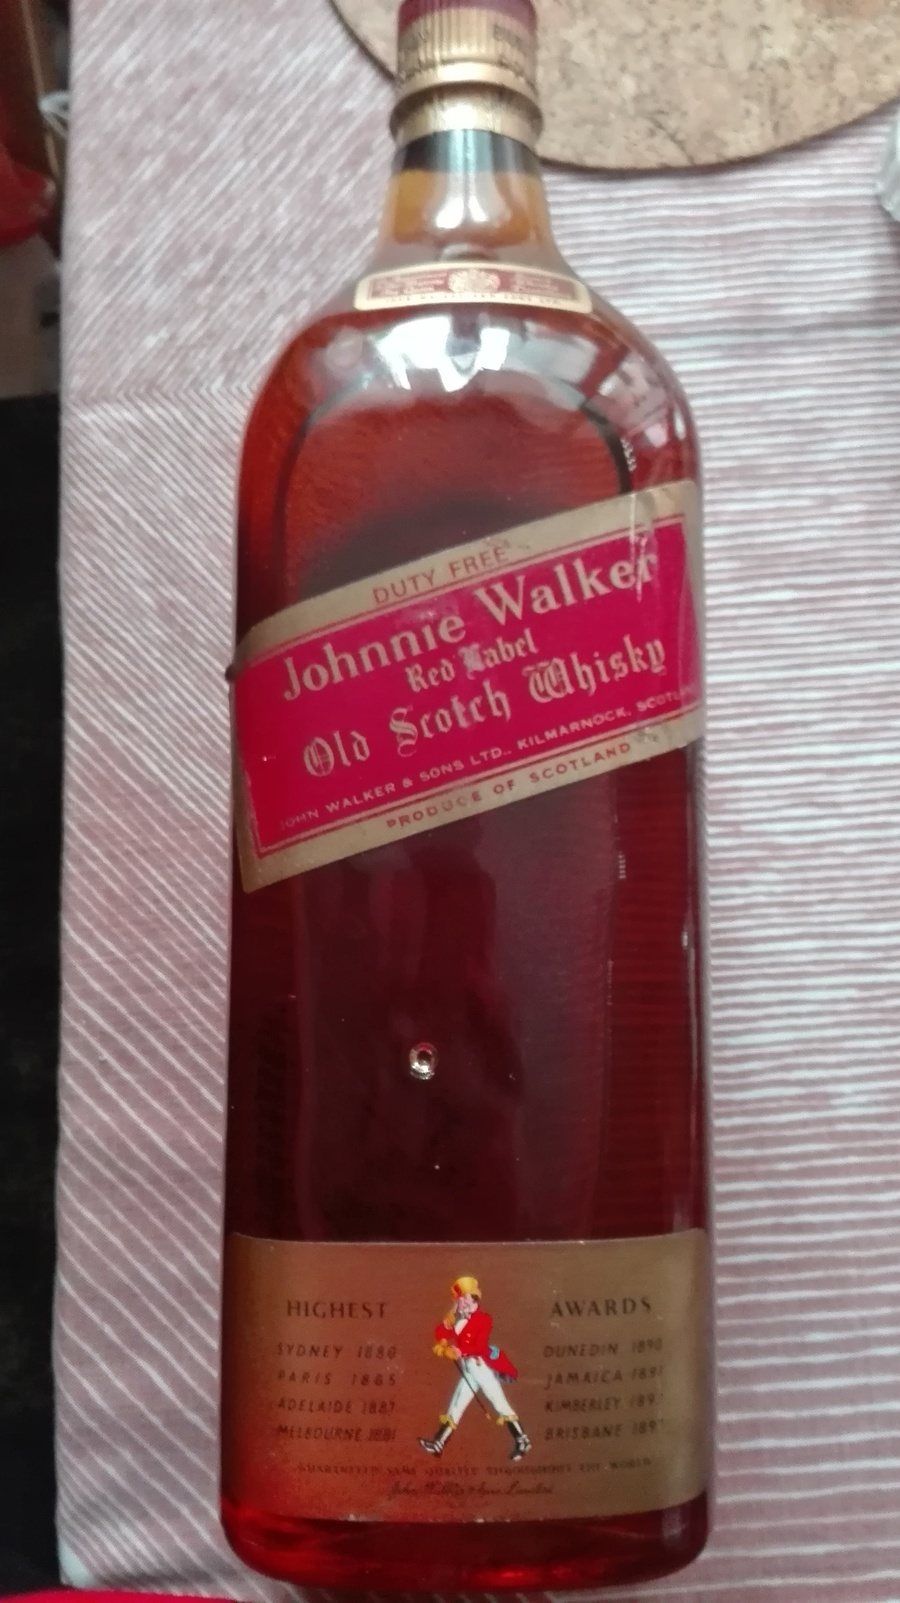 Johnnie Walker Red Label Approx Gallon Age Drinks Planet